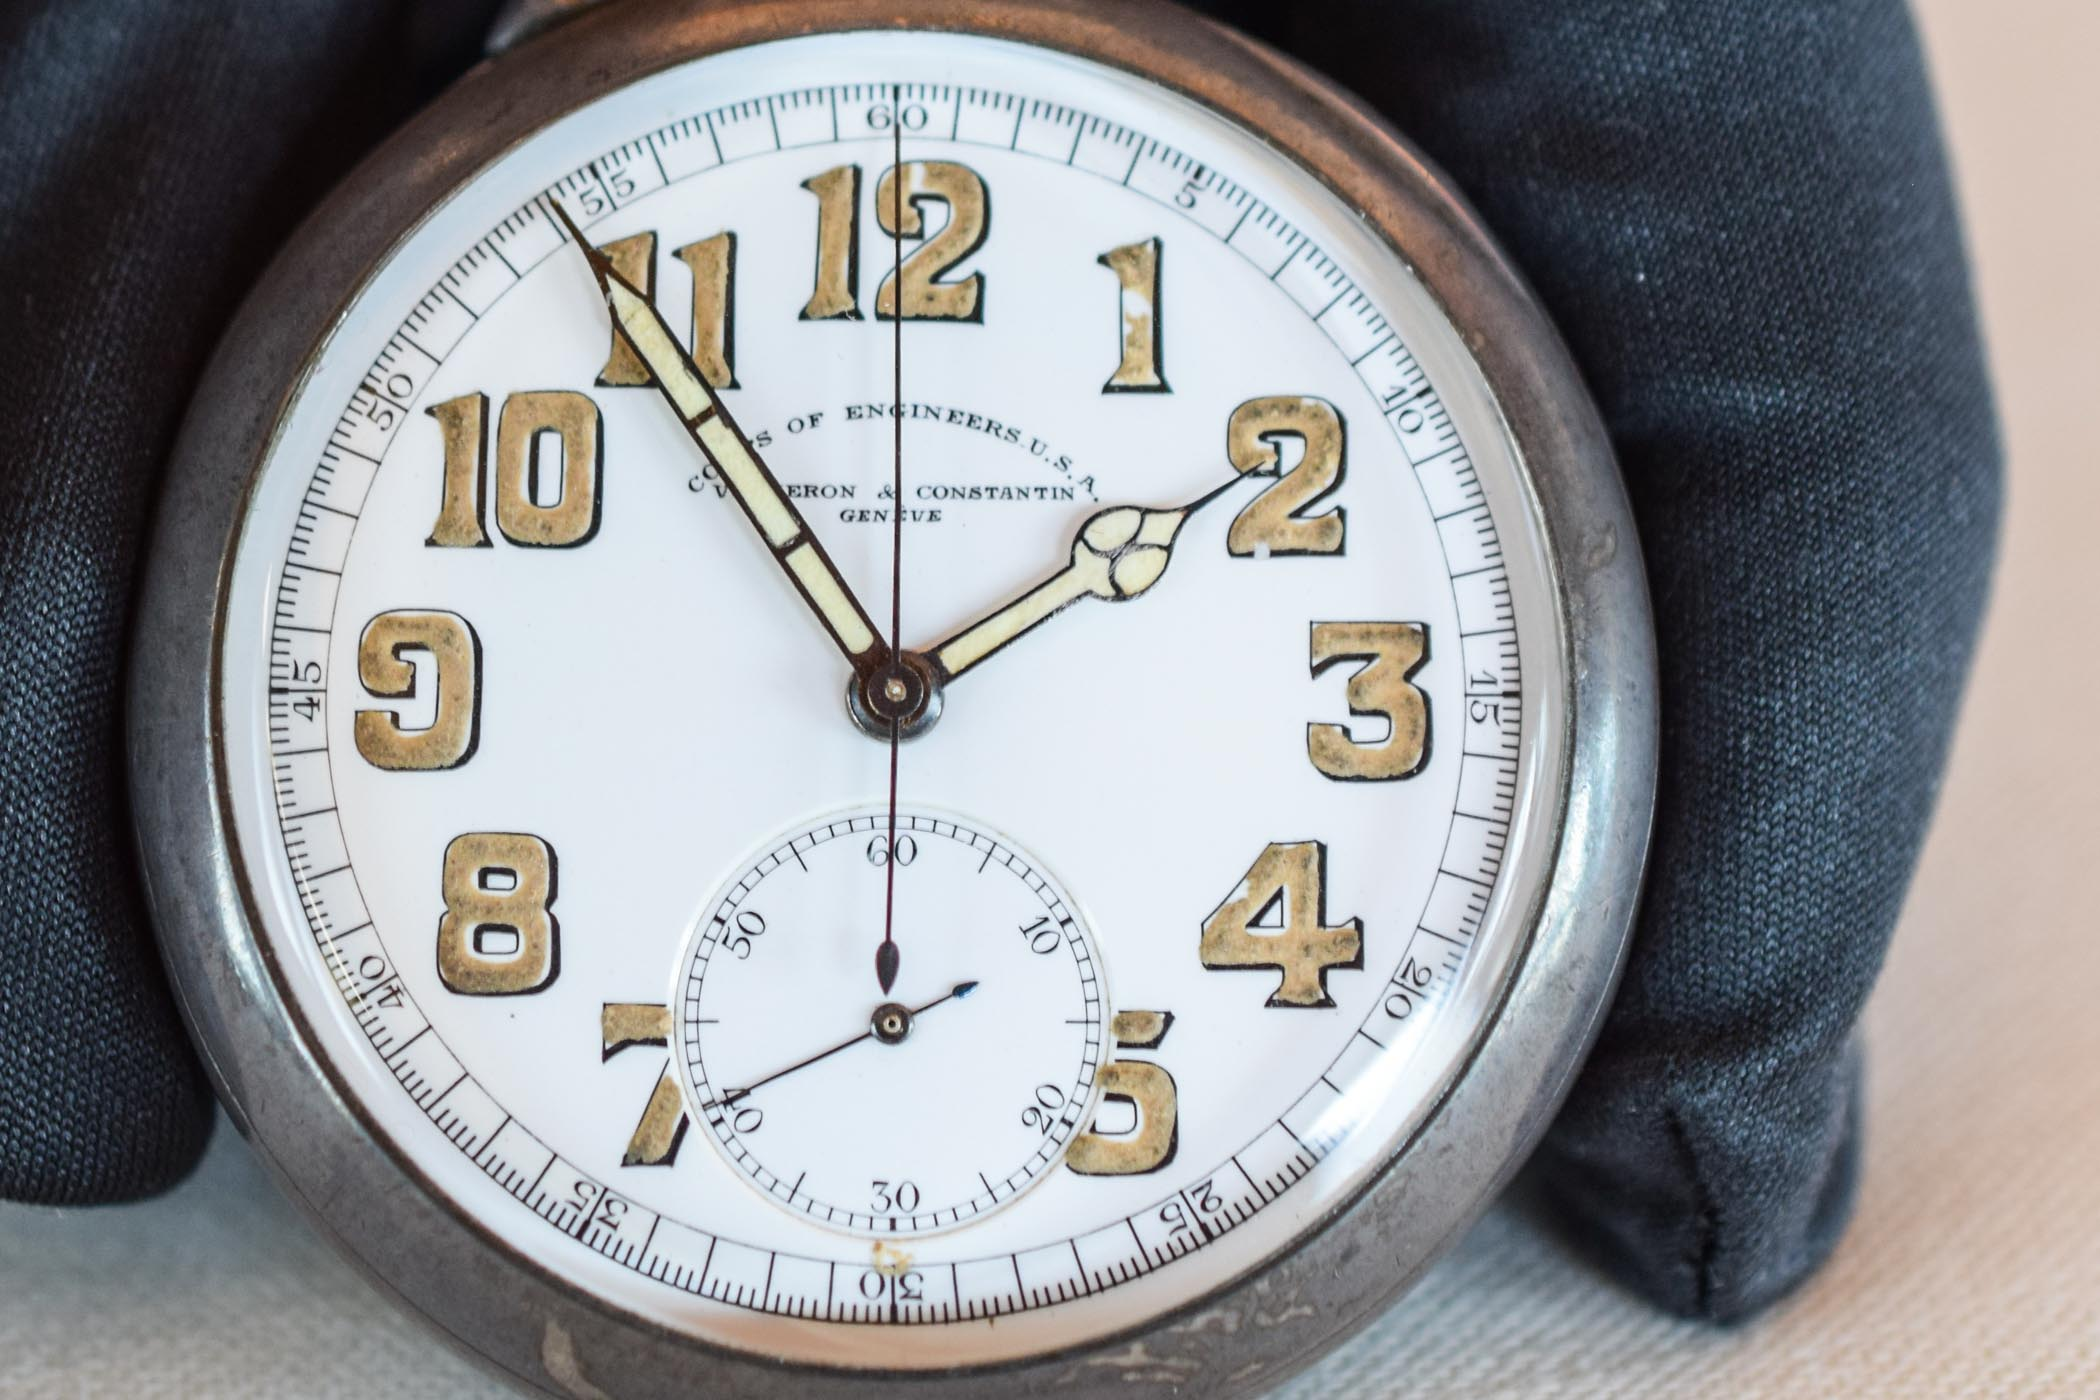 Vacheron Constantin Corps of Engineers pocket chronograph 1917 - 2